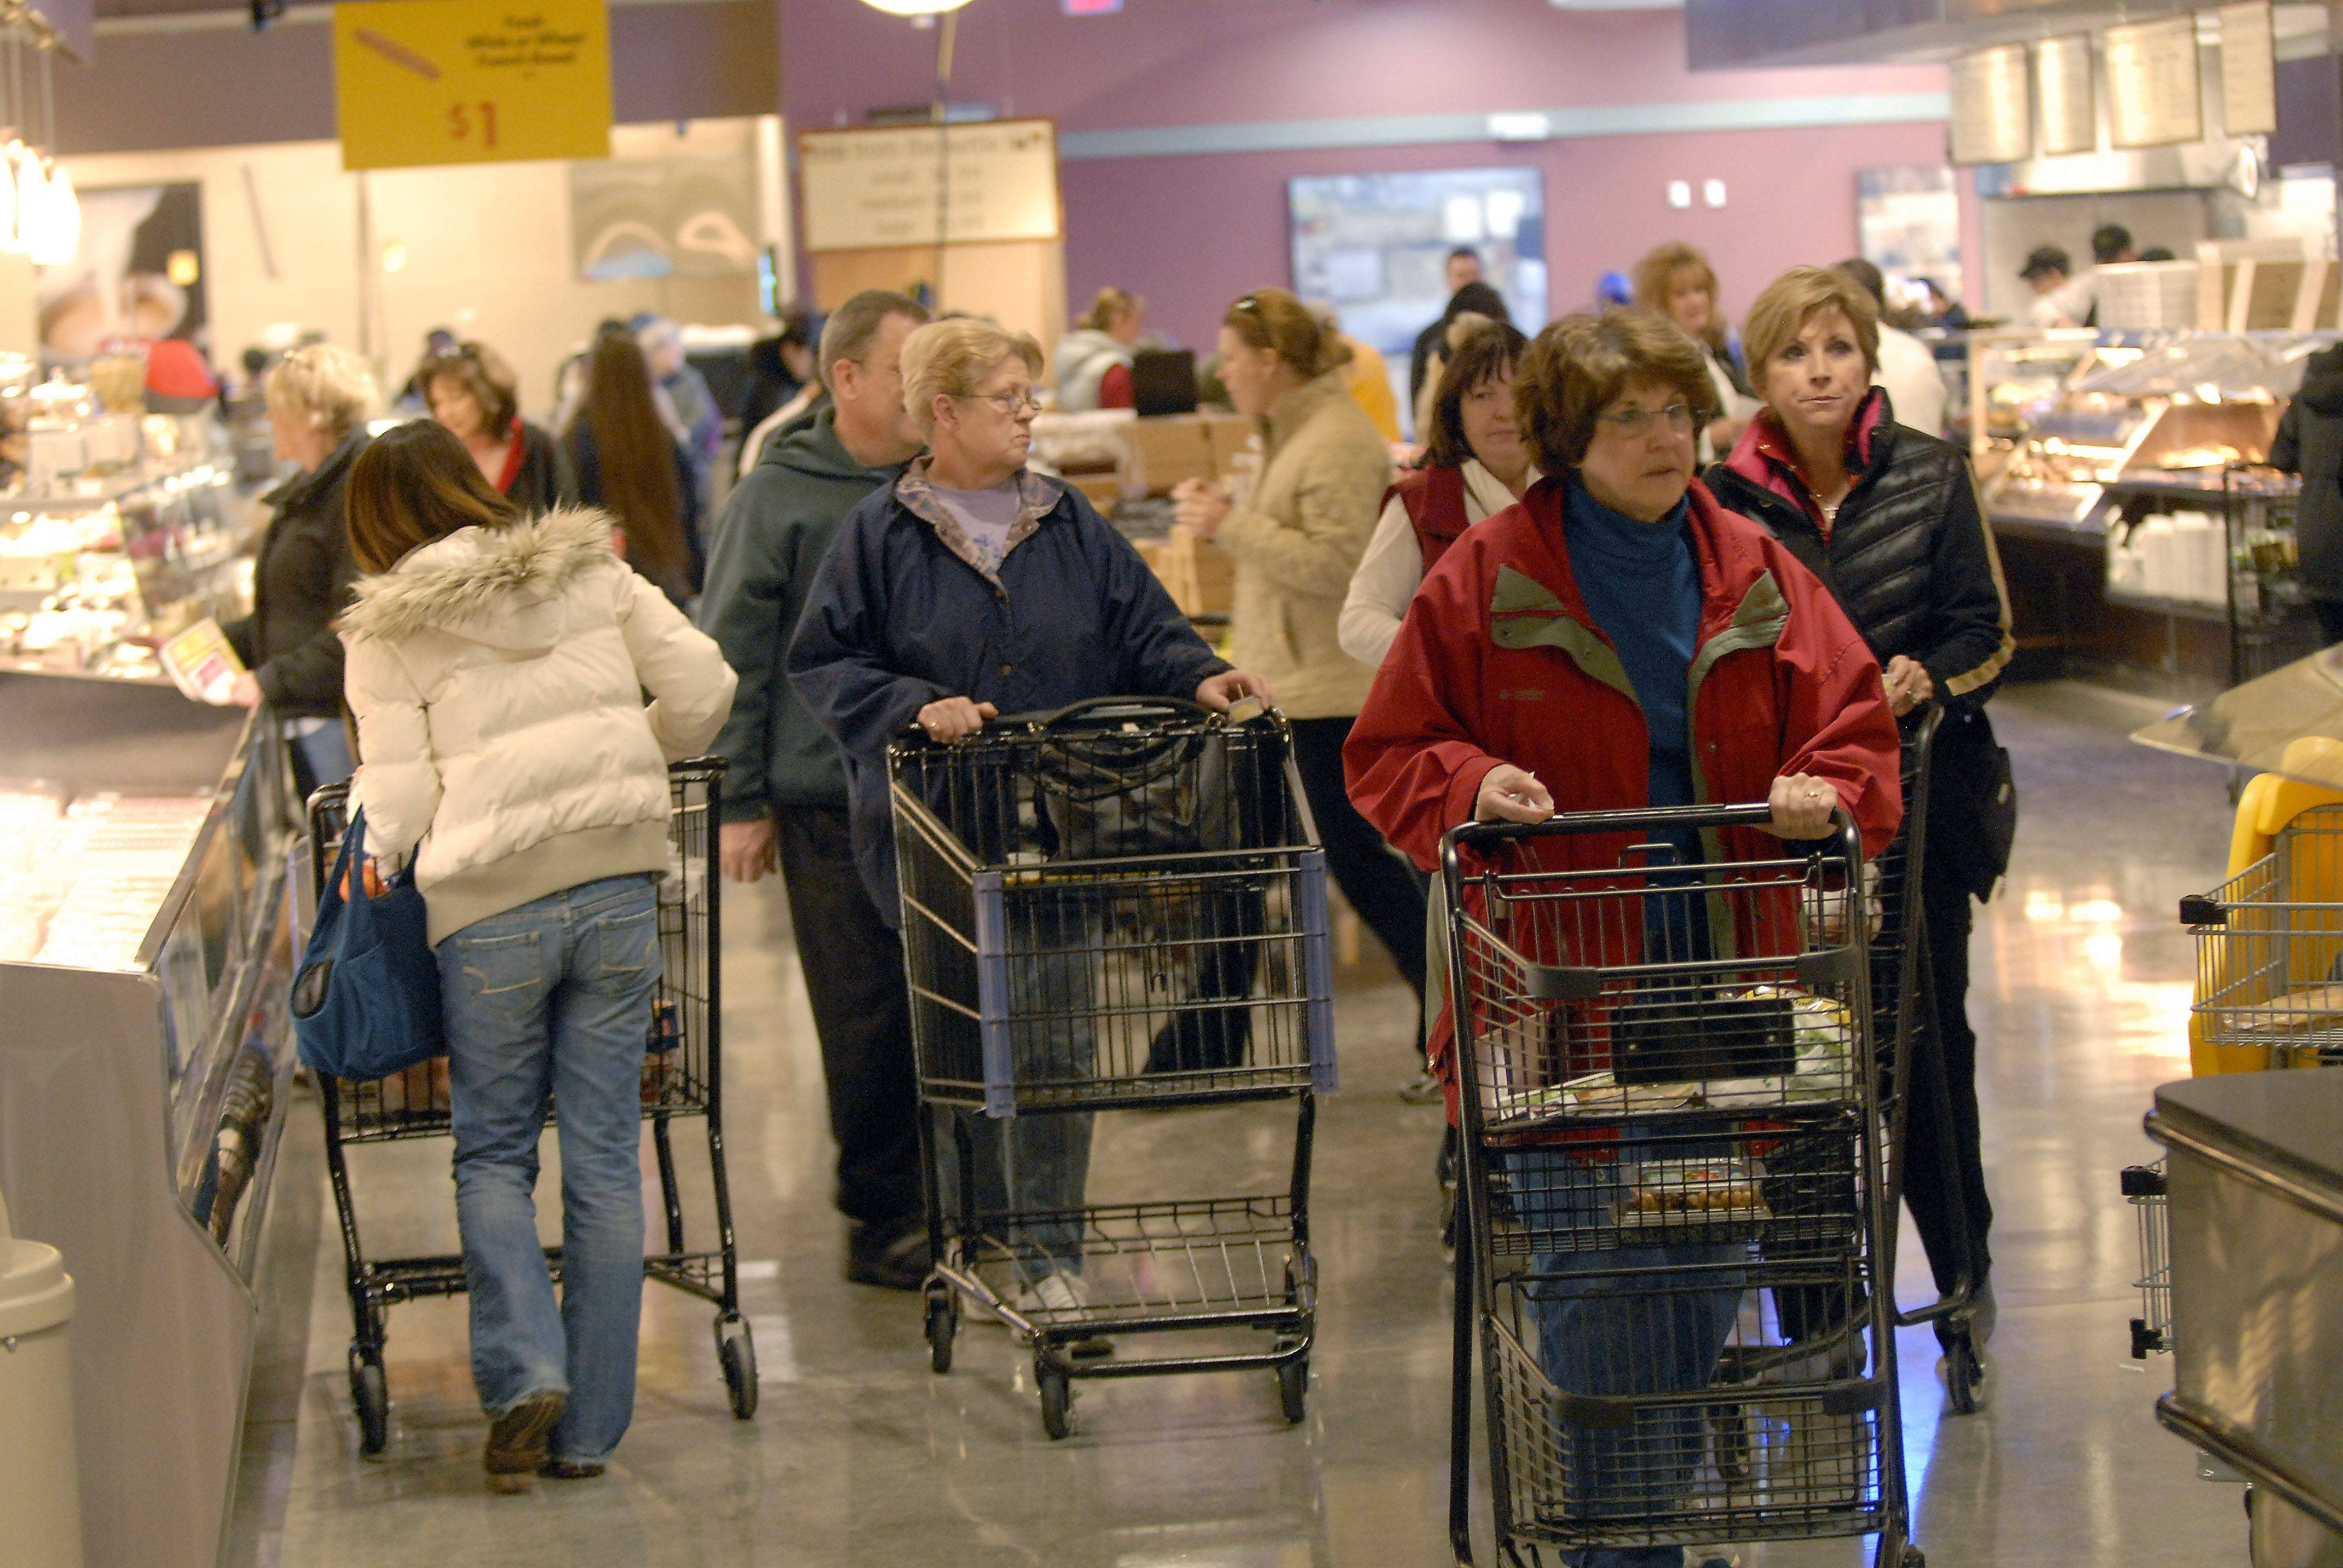 Shoppers crowd the aisles as they check out the new Mariano's Fresh Market Tuesday in Palatine. This was the grand opening of the third Northwest suburban store in addition to Mariano's two Chicago stores.